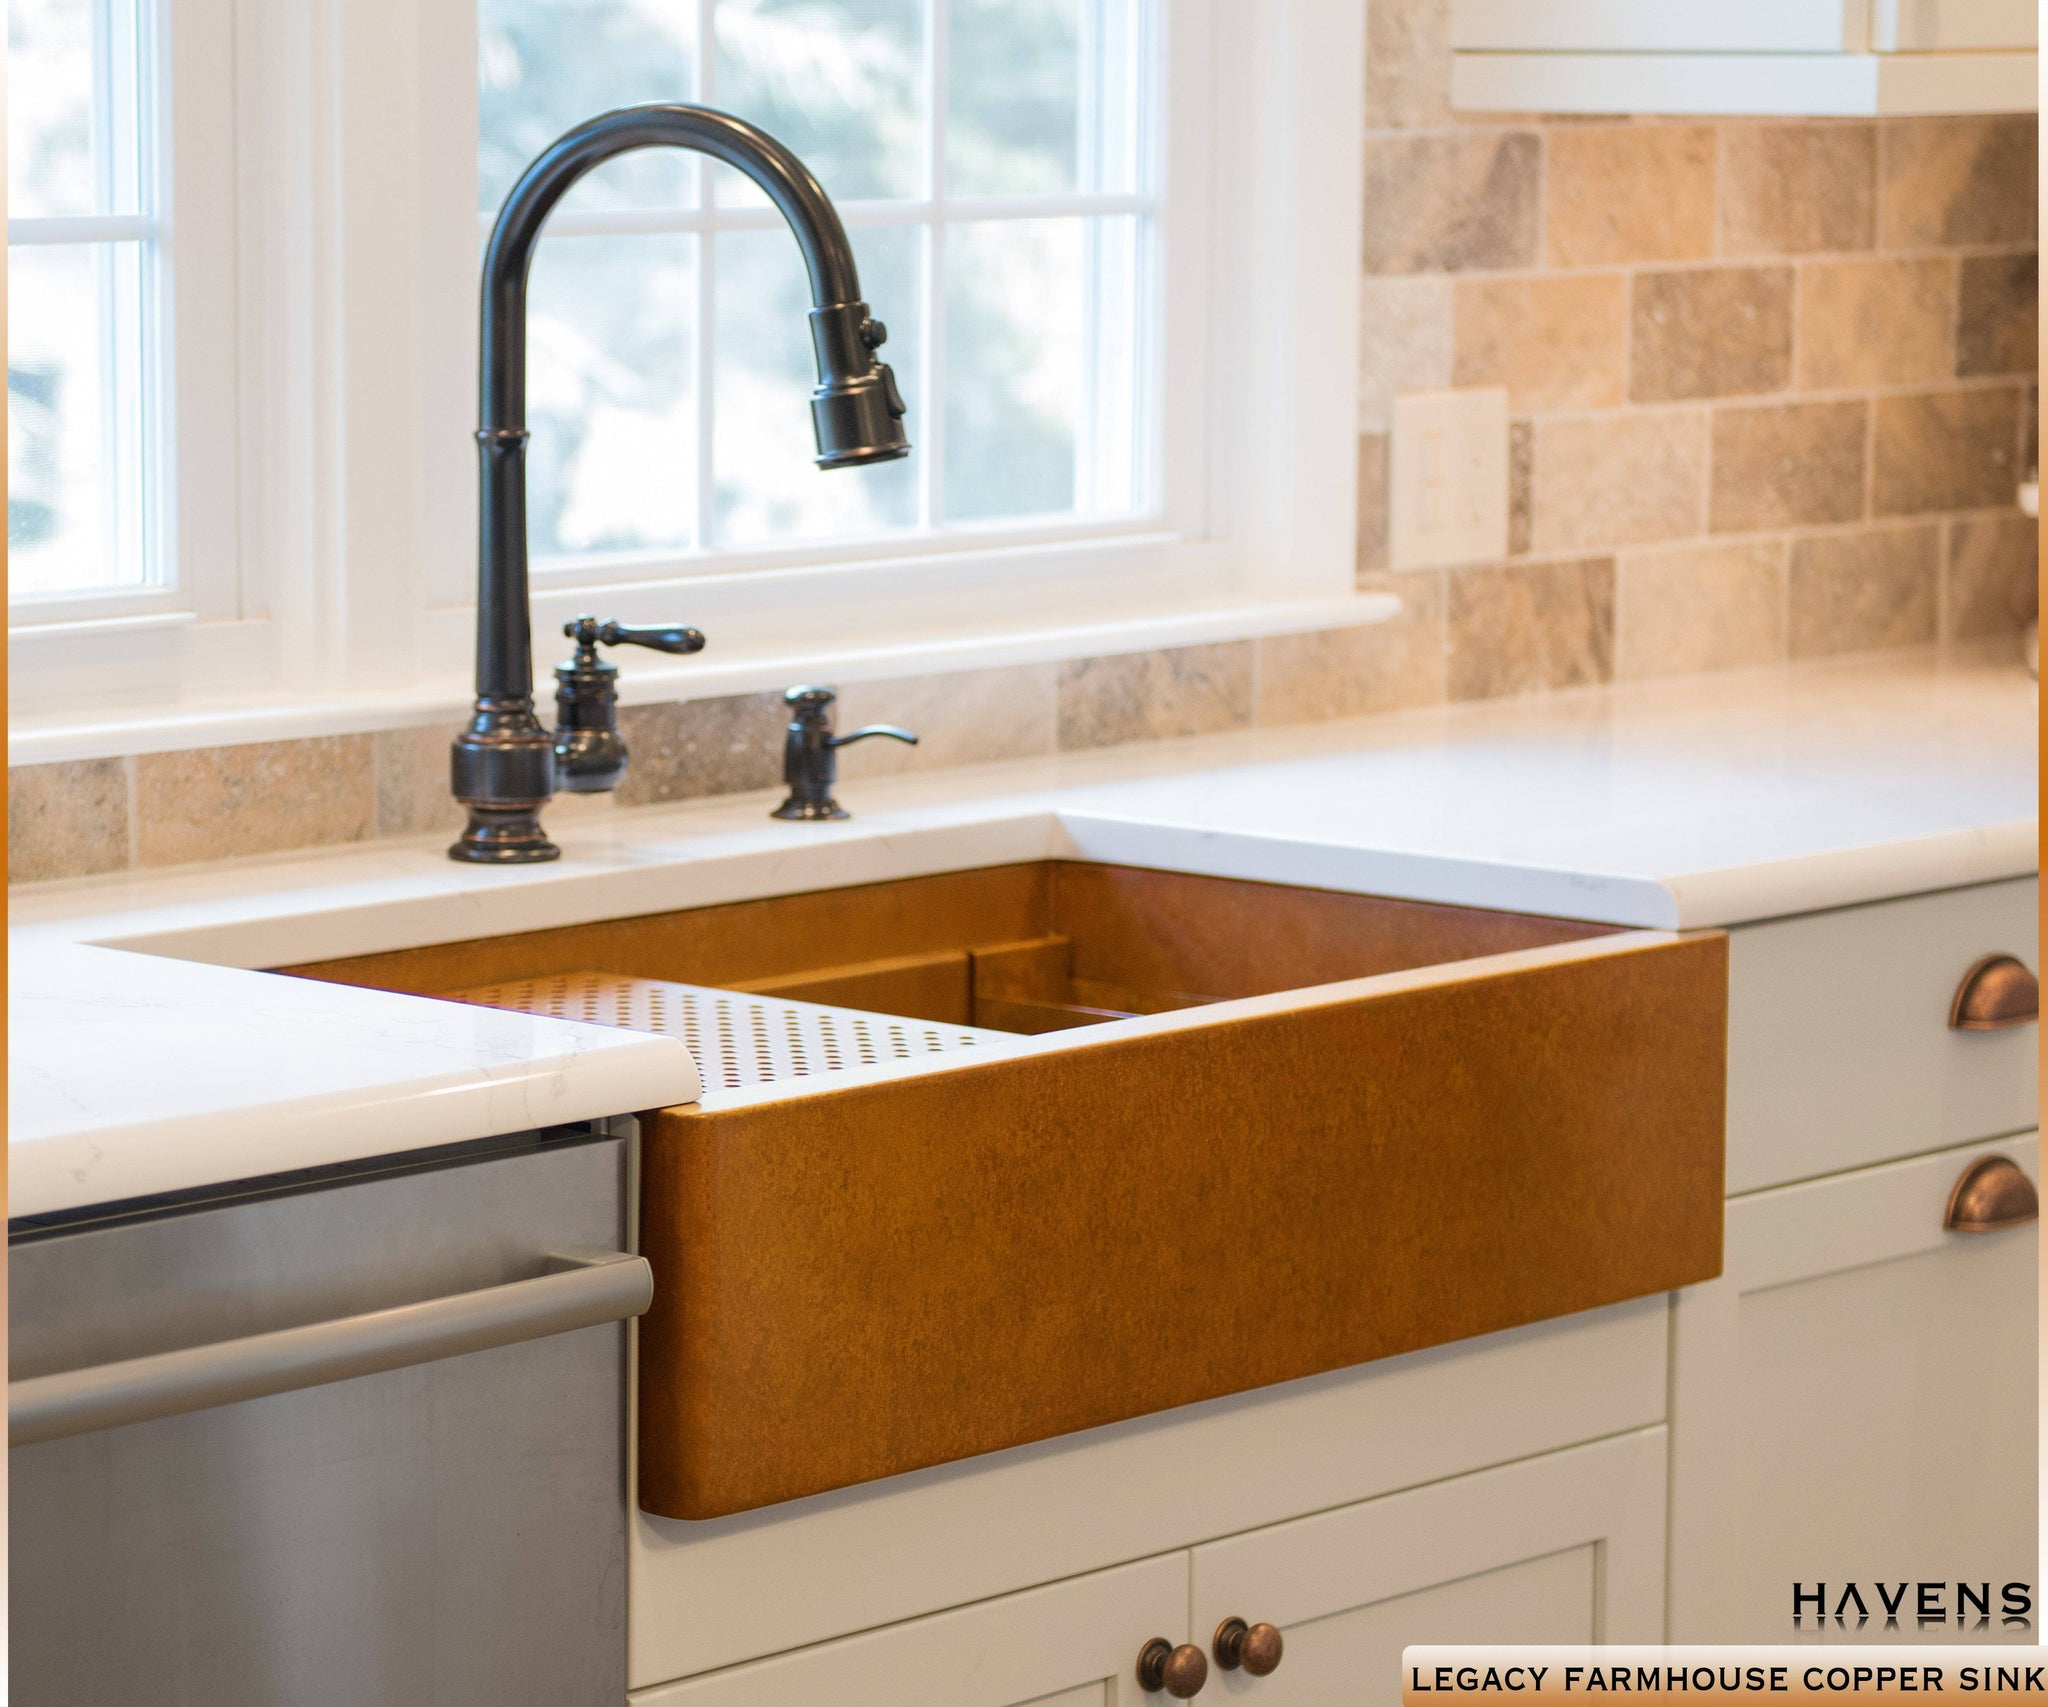 Copper Farmhouse Workstation Sink With A Built In Ledge And 14 Gauge Smooth  Copper Finish.